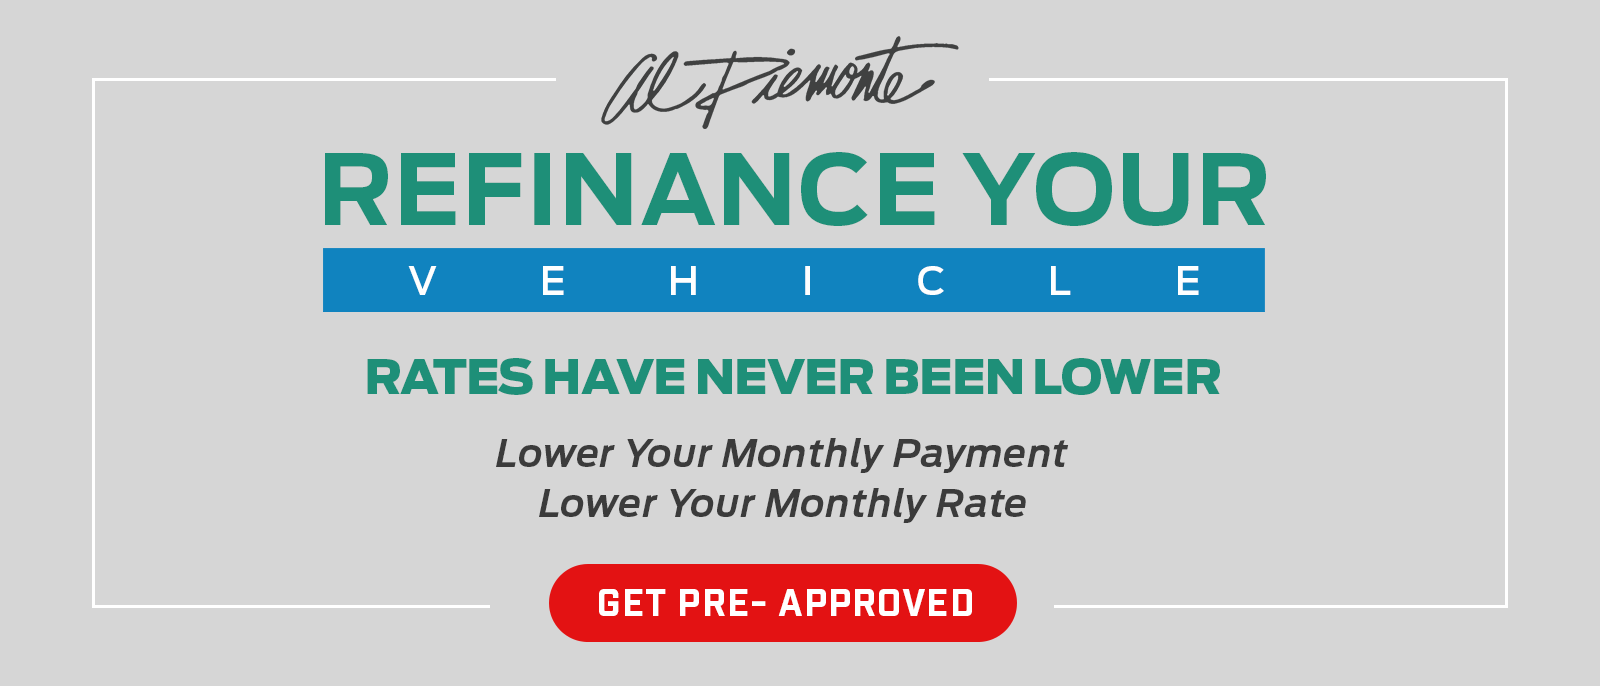 Refinance Your Vehicle at Al Piemonte Ford